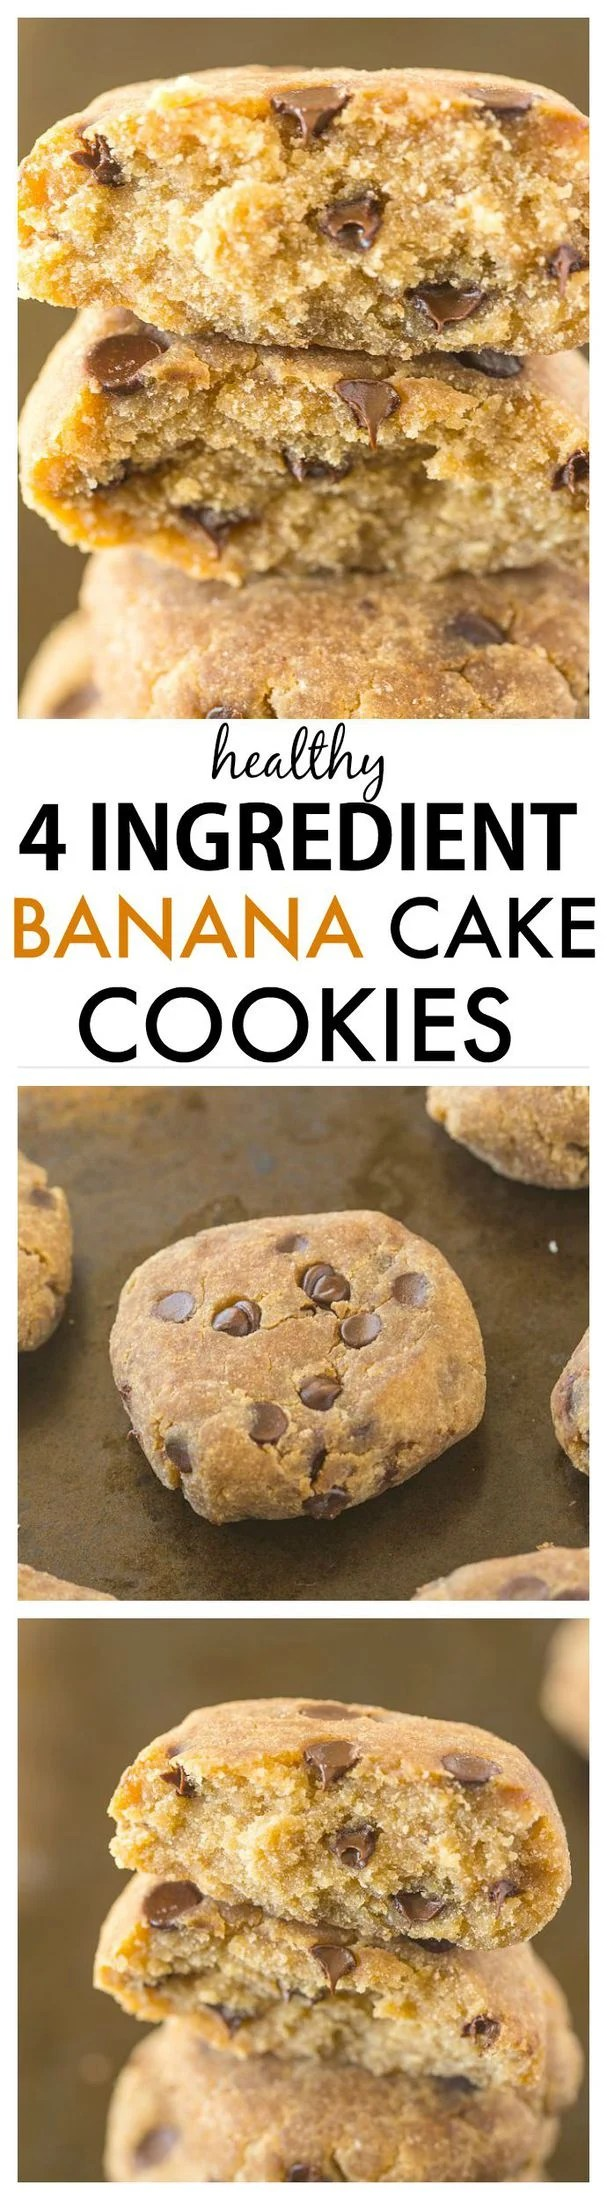 Healthy 4 ingredient banana cake cookies for What ingredients do you need to make a cake